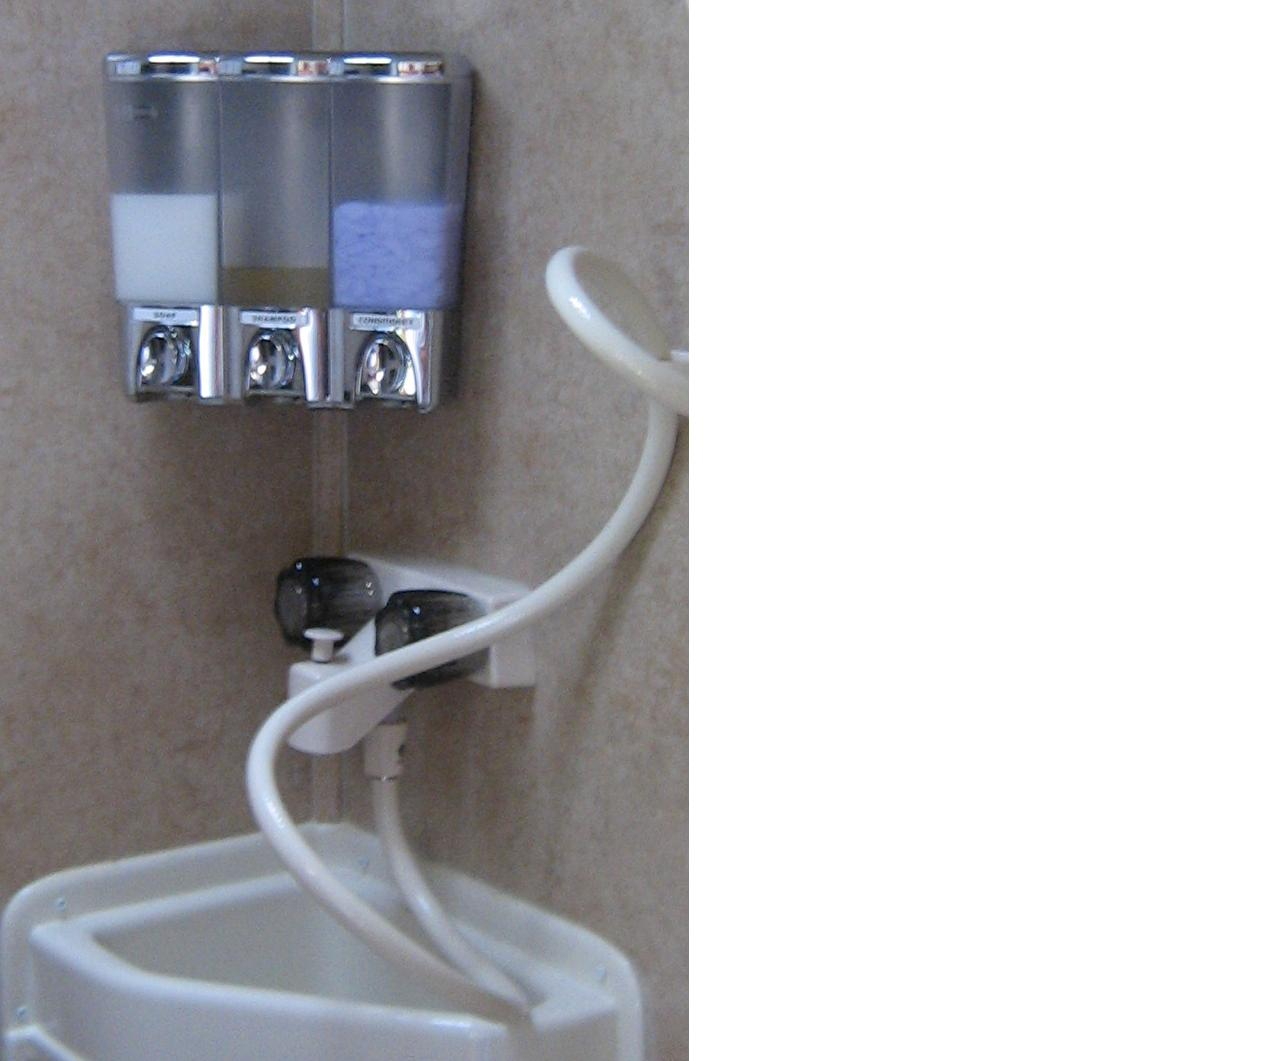 Soap And Shampoo Dispensers For Showers List Your Mods R Pod Owners Forum Page 2